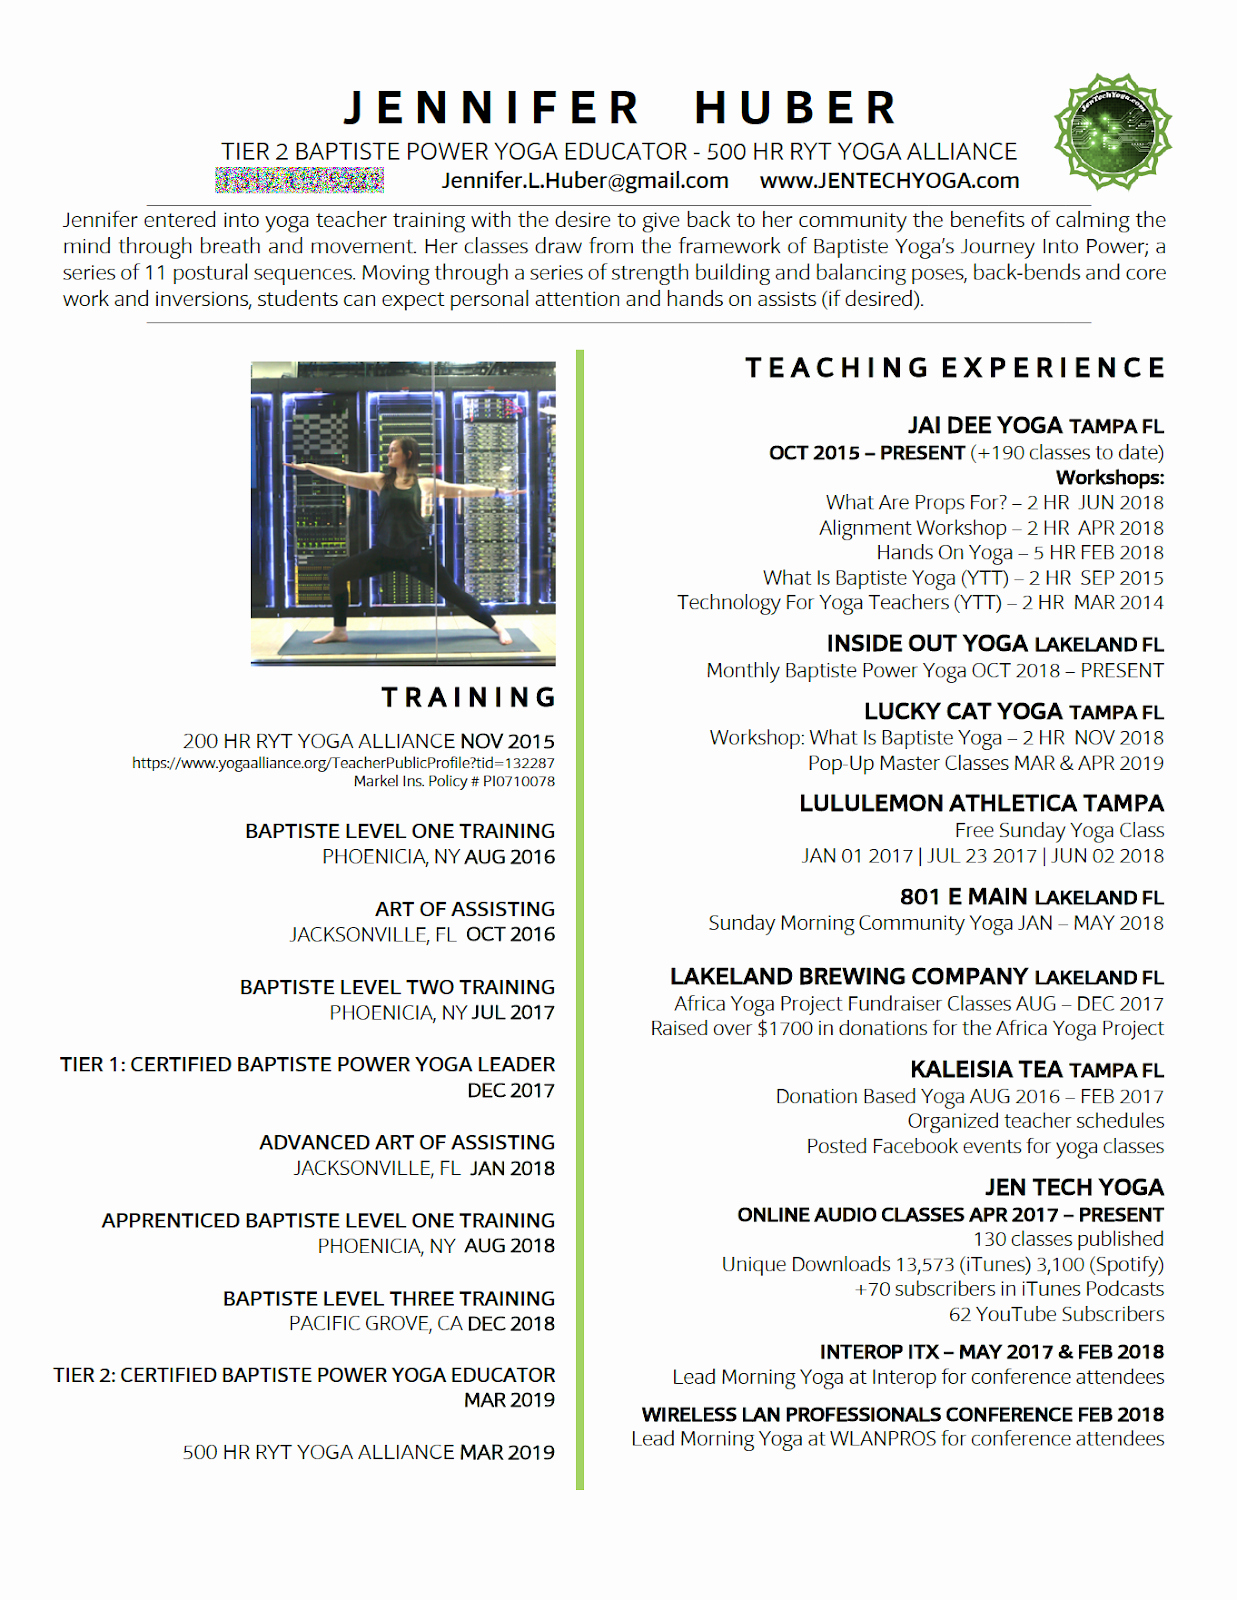 Yoga Teacher Resume Sample Luxury Jen Tech Yoga